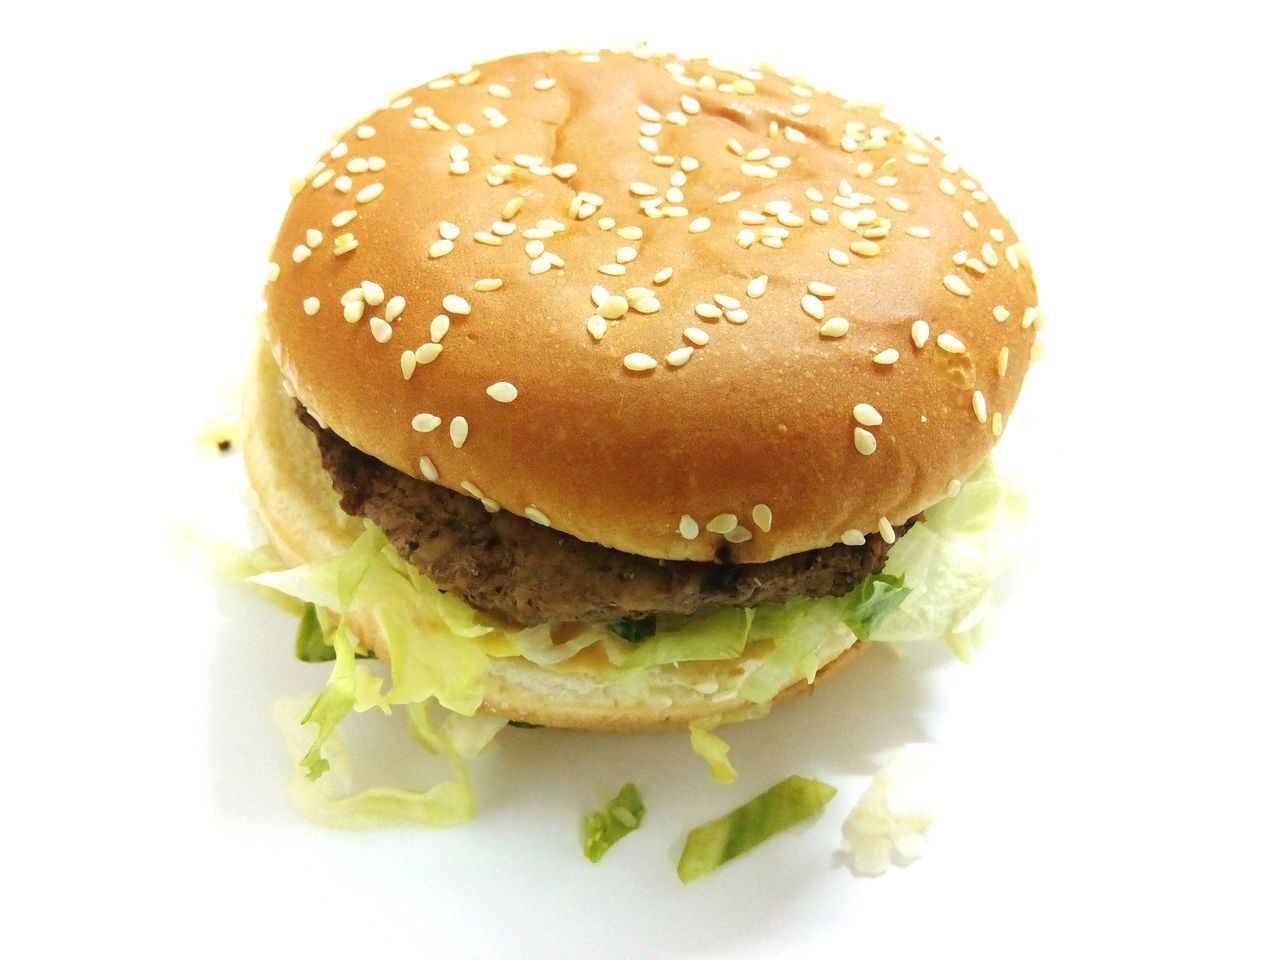 Bread Hamburger Burger Food Bun Sesame Meal No People Food And Drink Unhealthy Eating Seed Sandwich Fast Food Close-up Freshness Ground Beef Fast Food Burger Seed Copy Space Flat Lay Ready-to-eat White Background Food And Drink Studio Shot